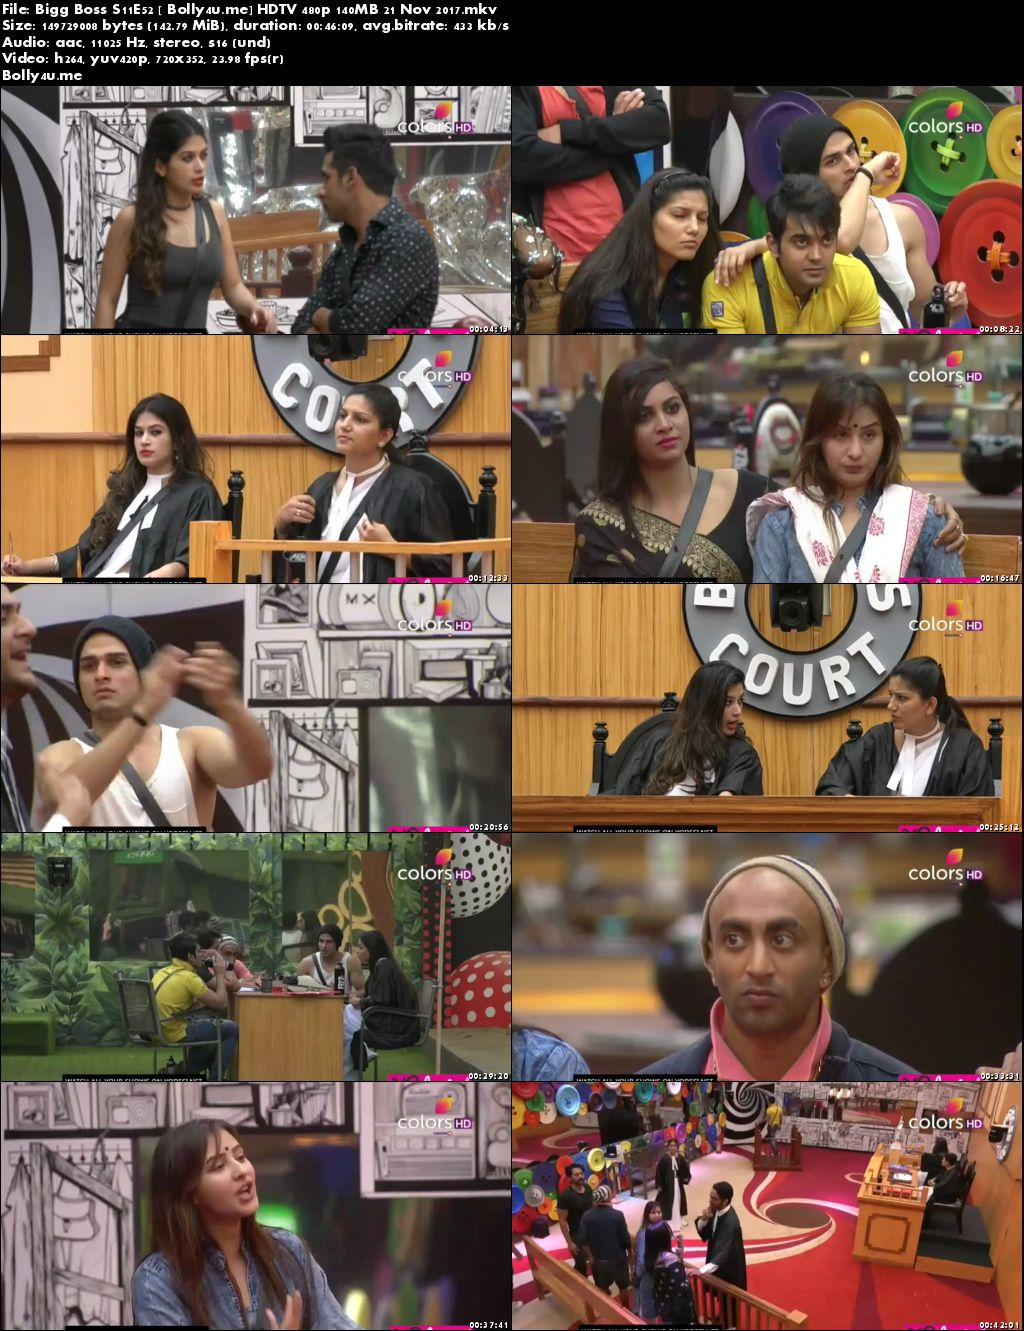 Bigg Boss S11E52 HDTV 480p 140MB 21 November 2017 Download